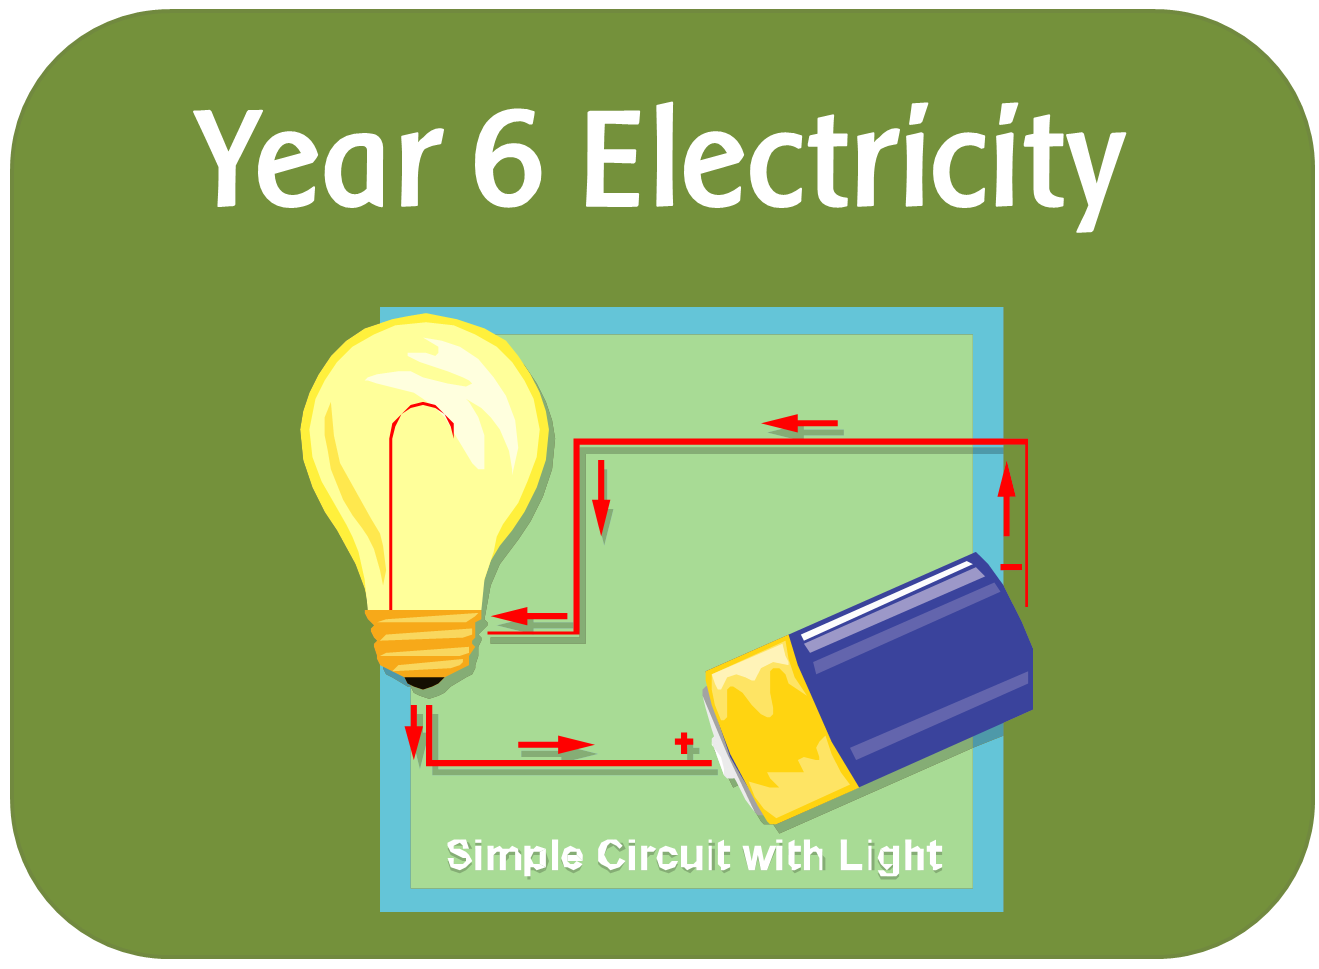 Year 6 Electricity Science Topic